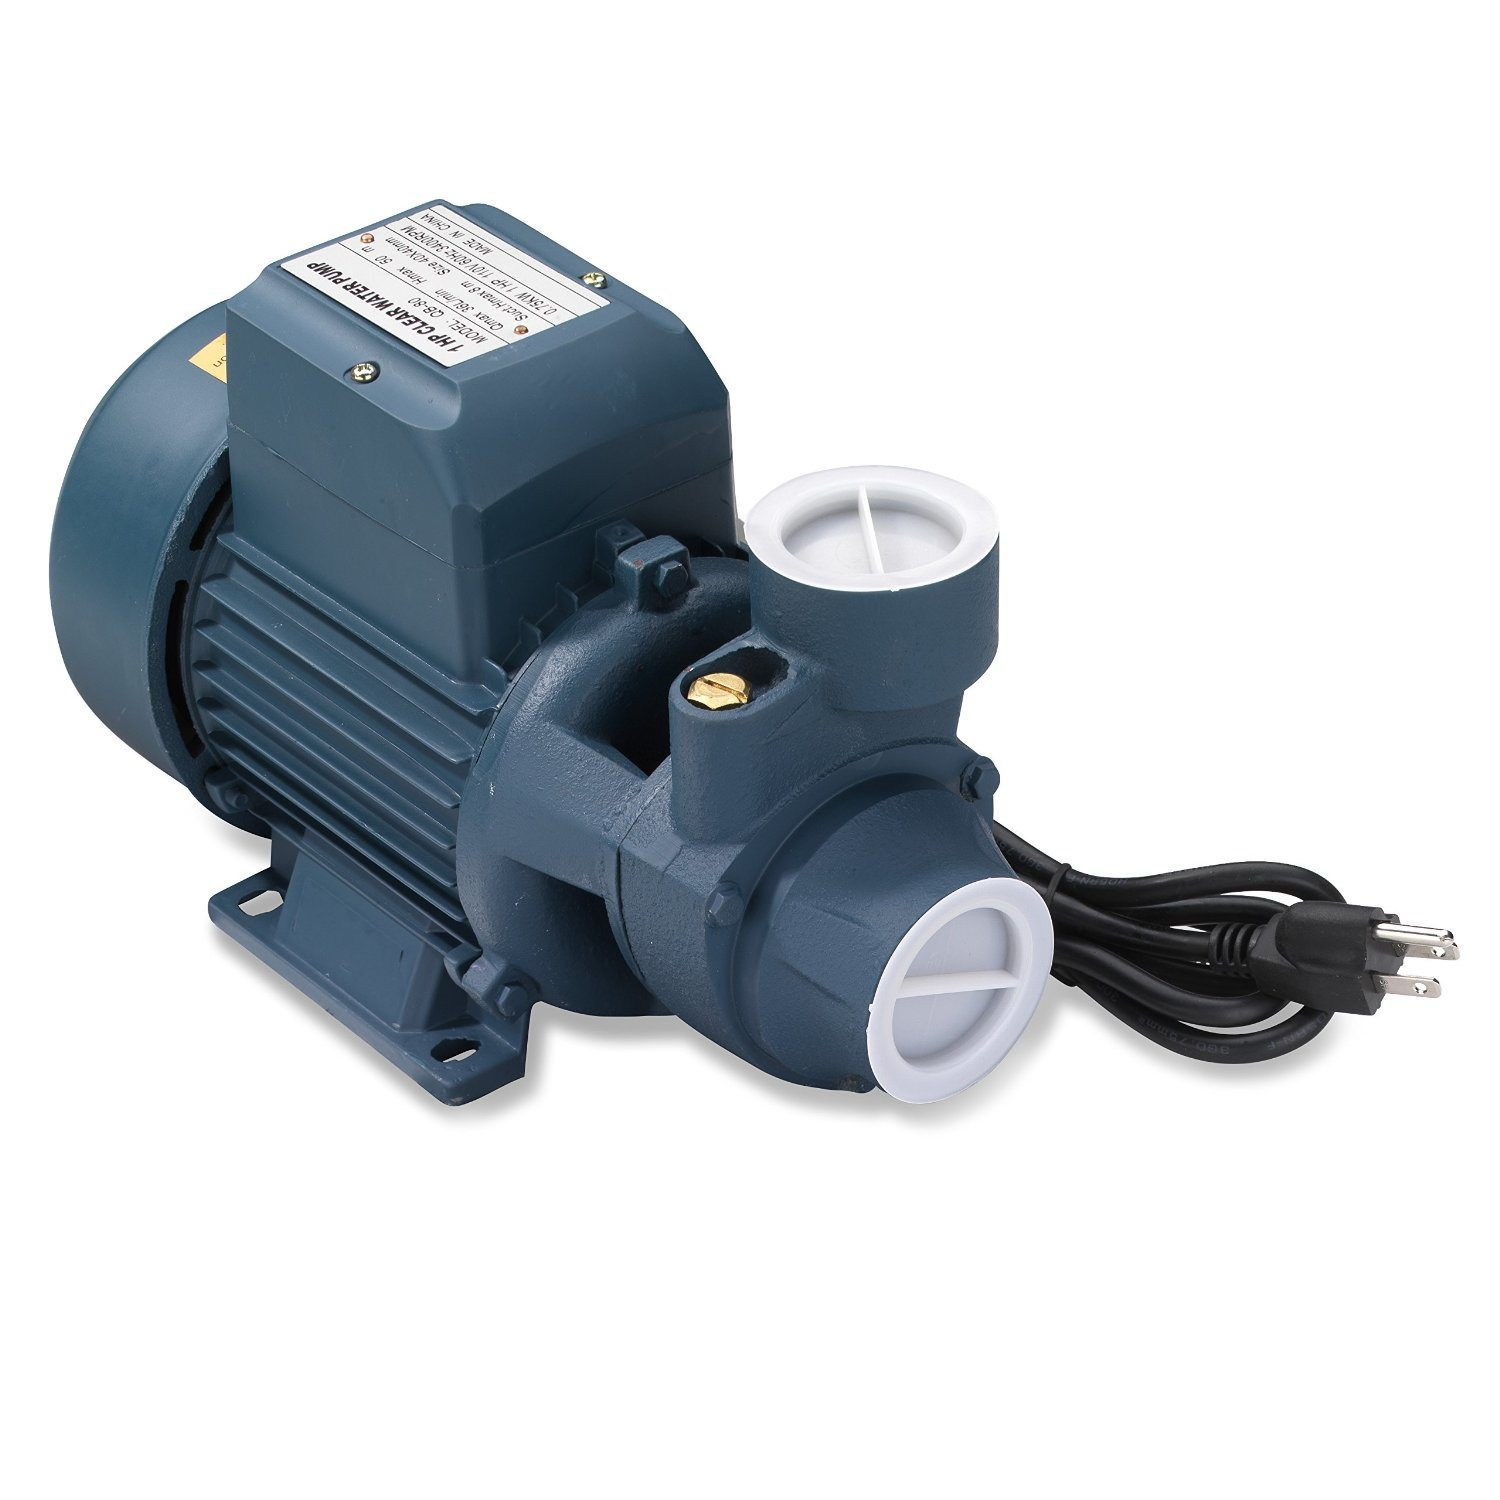 Details about 1 HP 110 V Clear Water Pump 925 GPH | Pools, Ponds,  Irrigation, Centrifugal